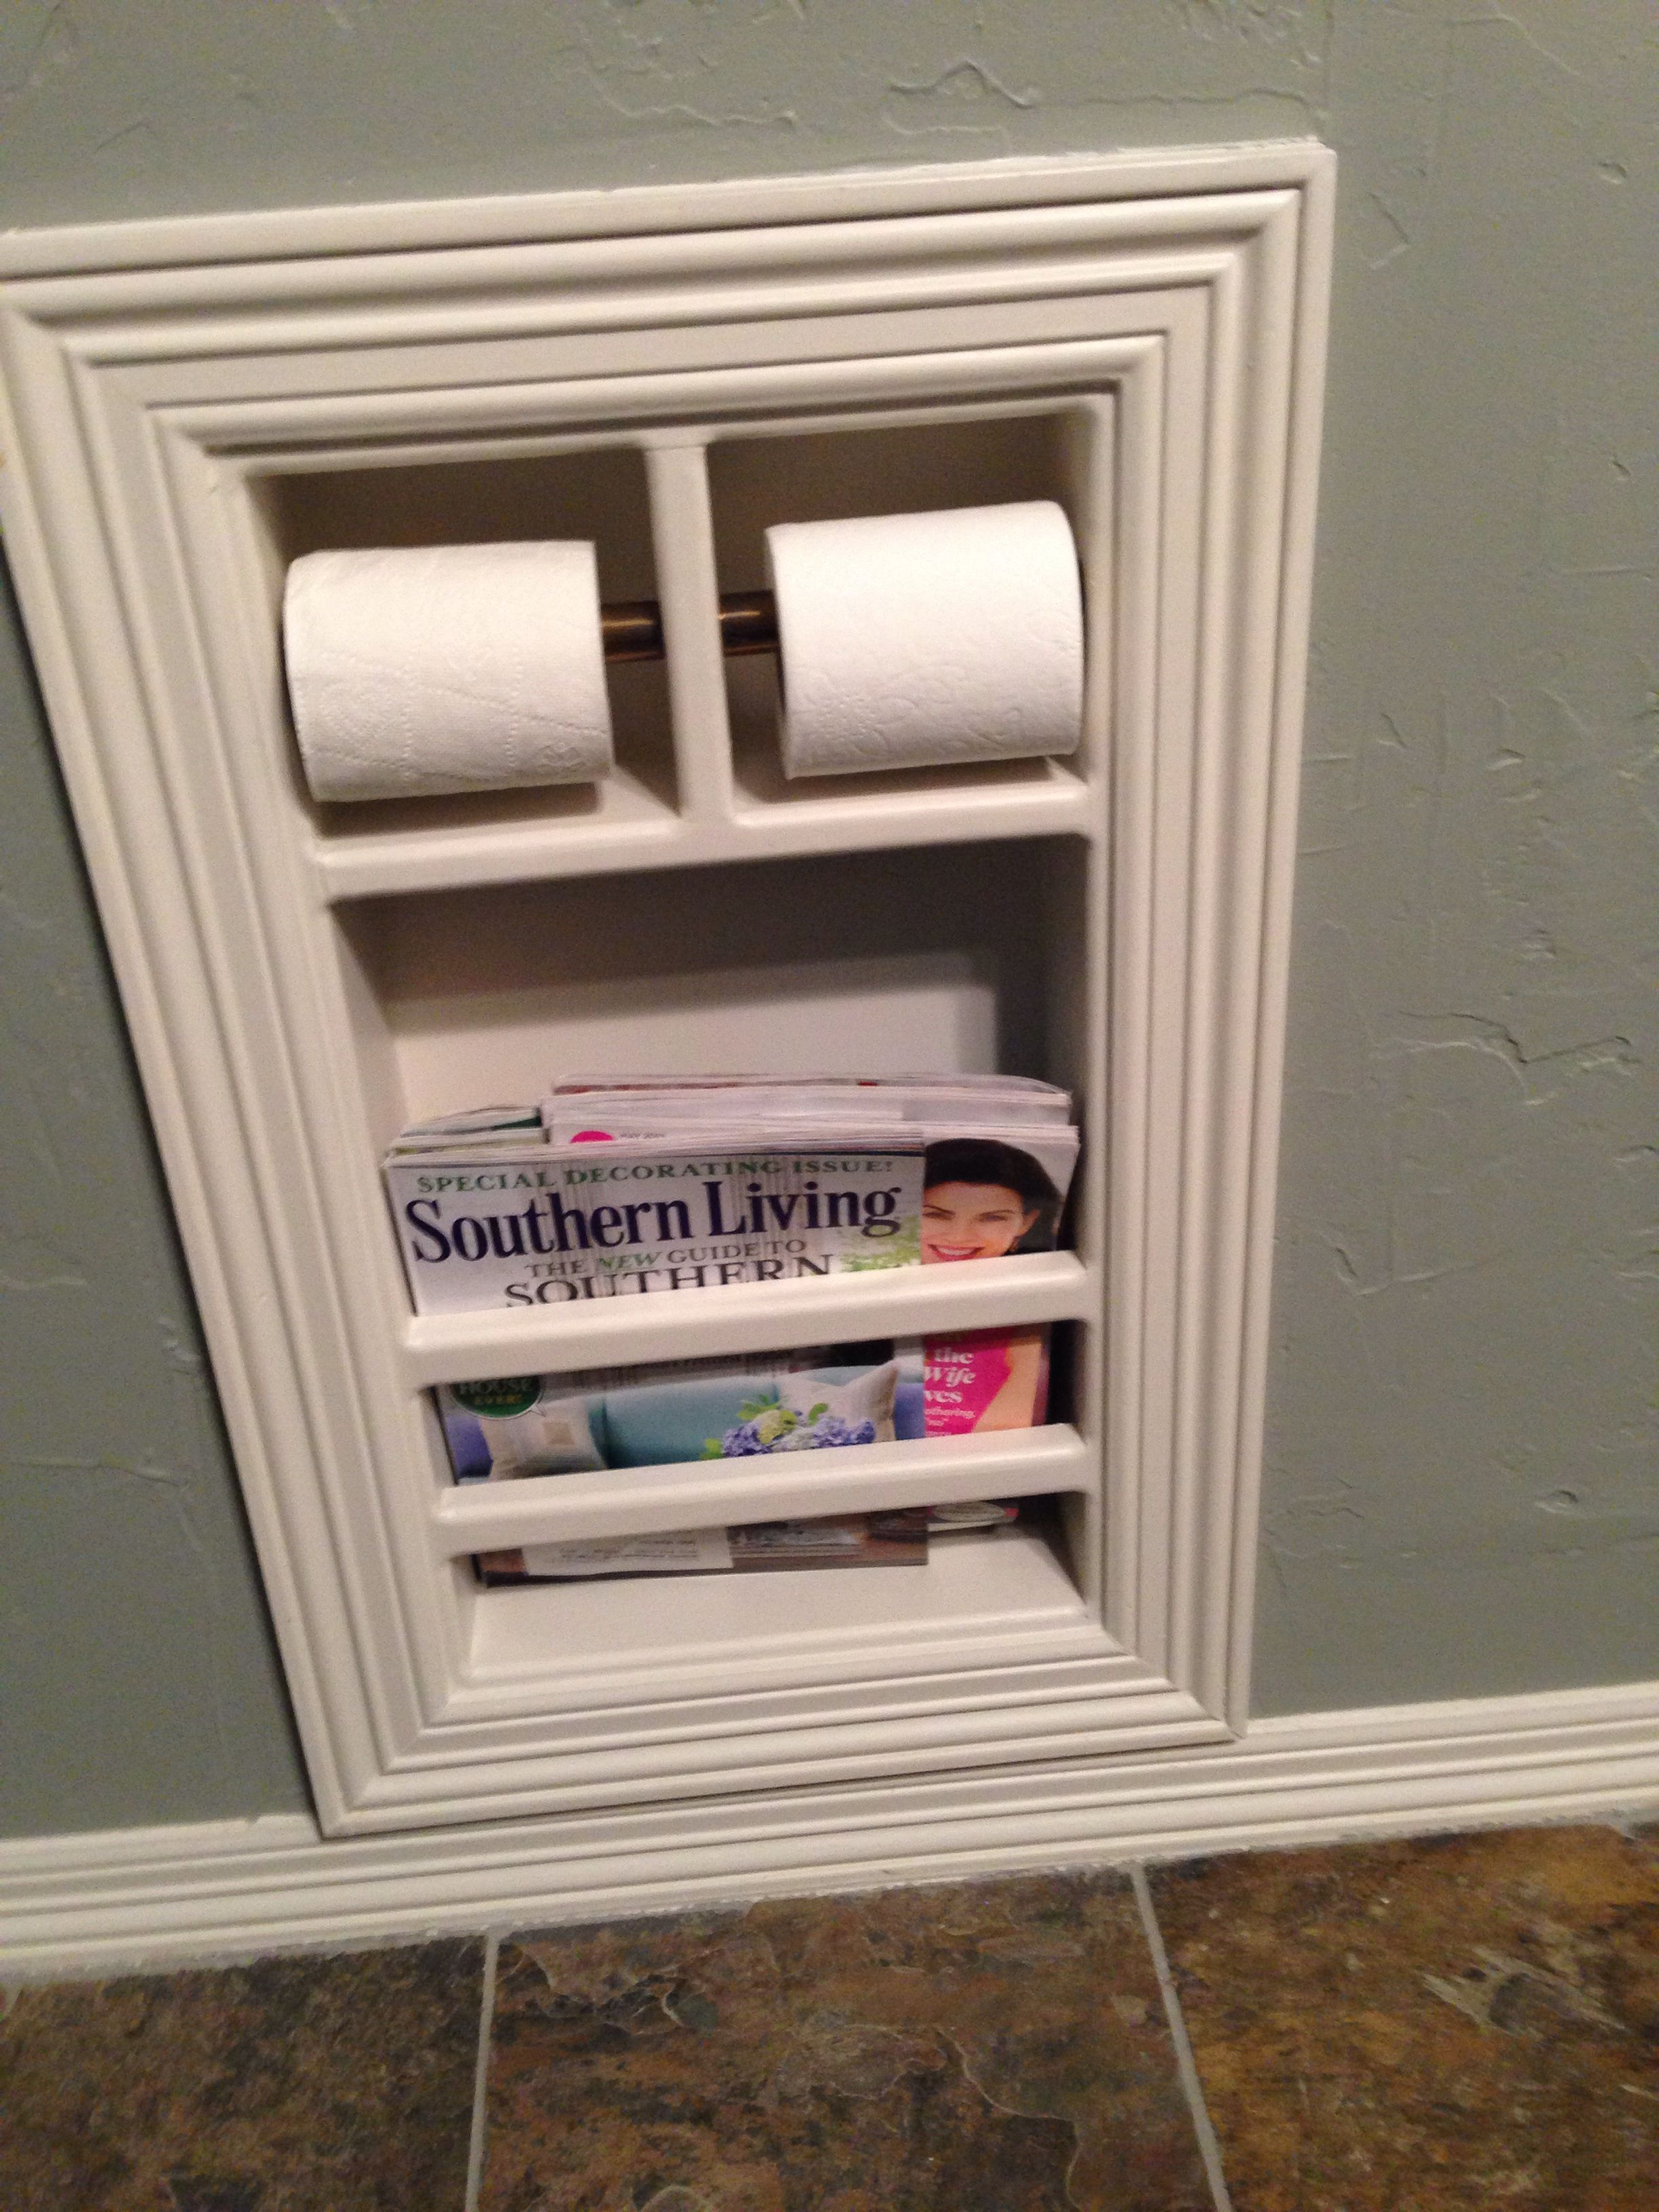 Built In Bathroom Toilet Paper Holder Bathroom Toilet Paper Holders Small Bathroom Home Remodeling